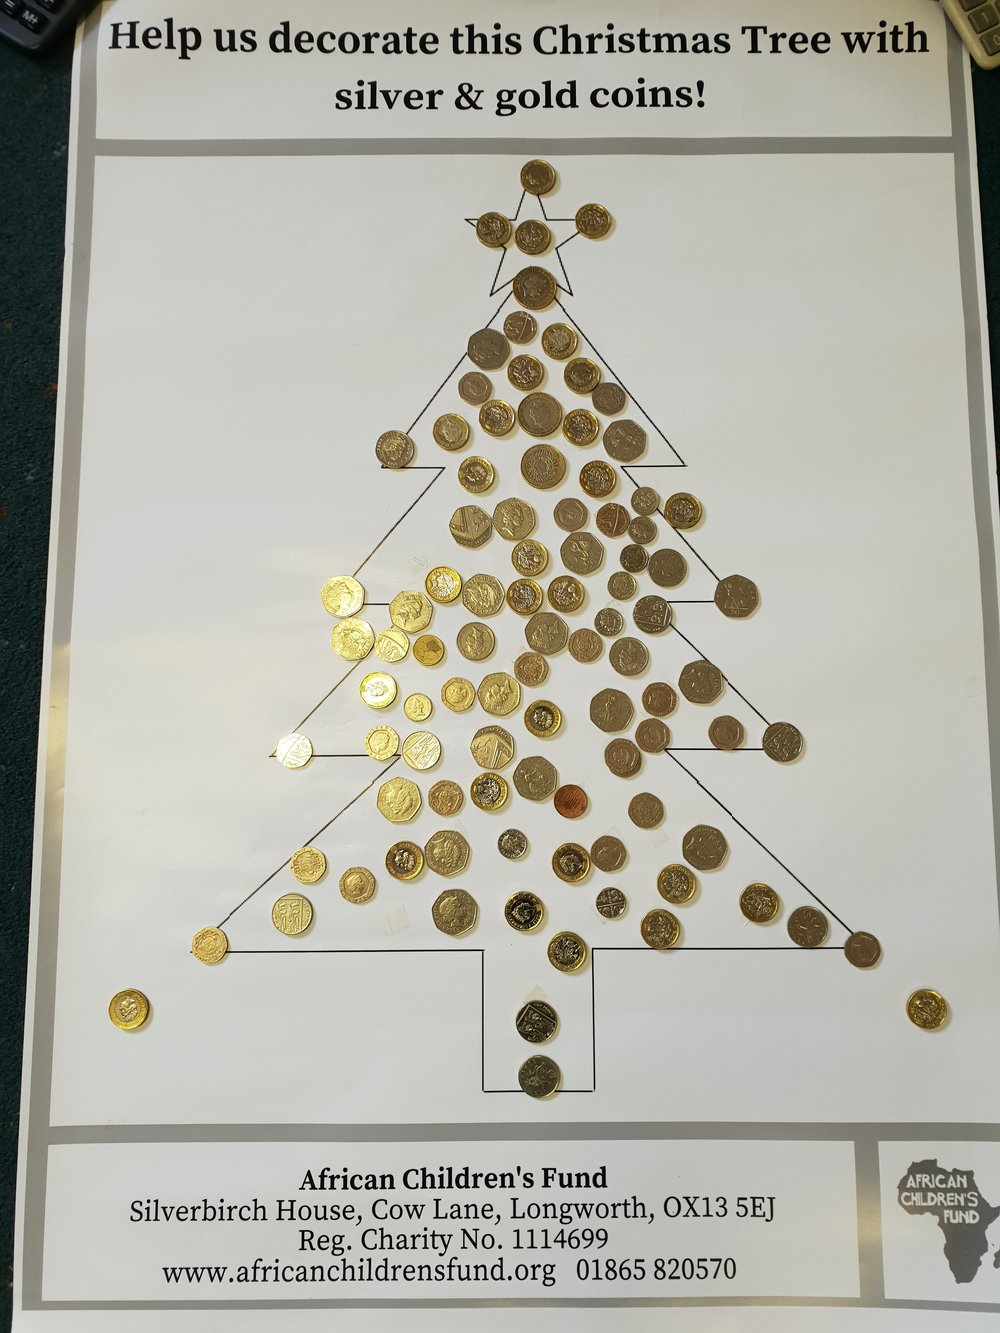 Giant Christmas tree poster with coins attached, decorated by Burford Primary School.